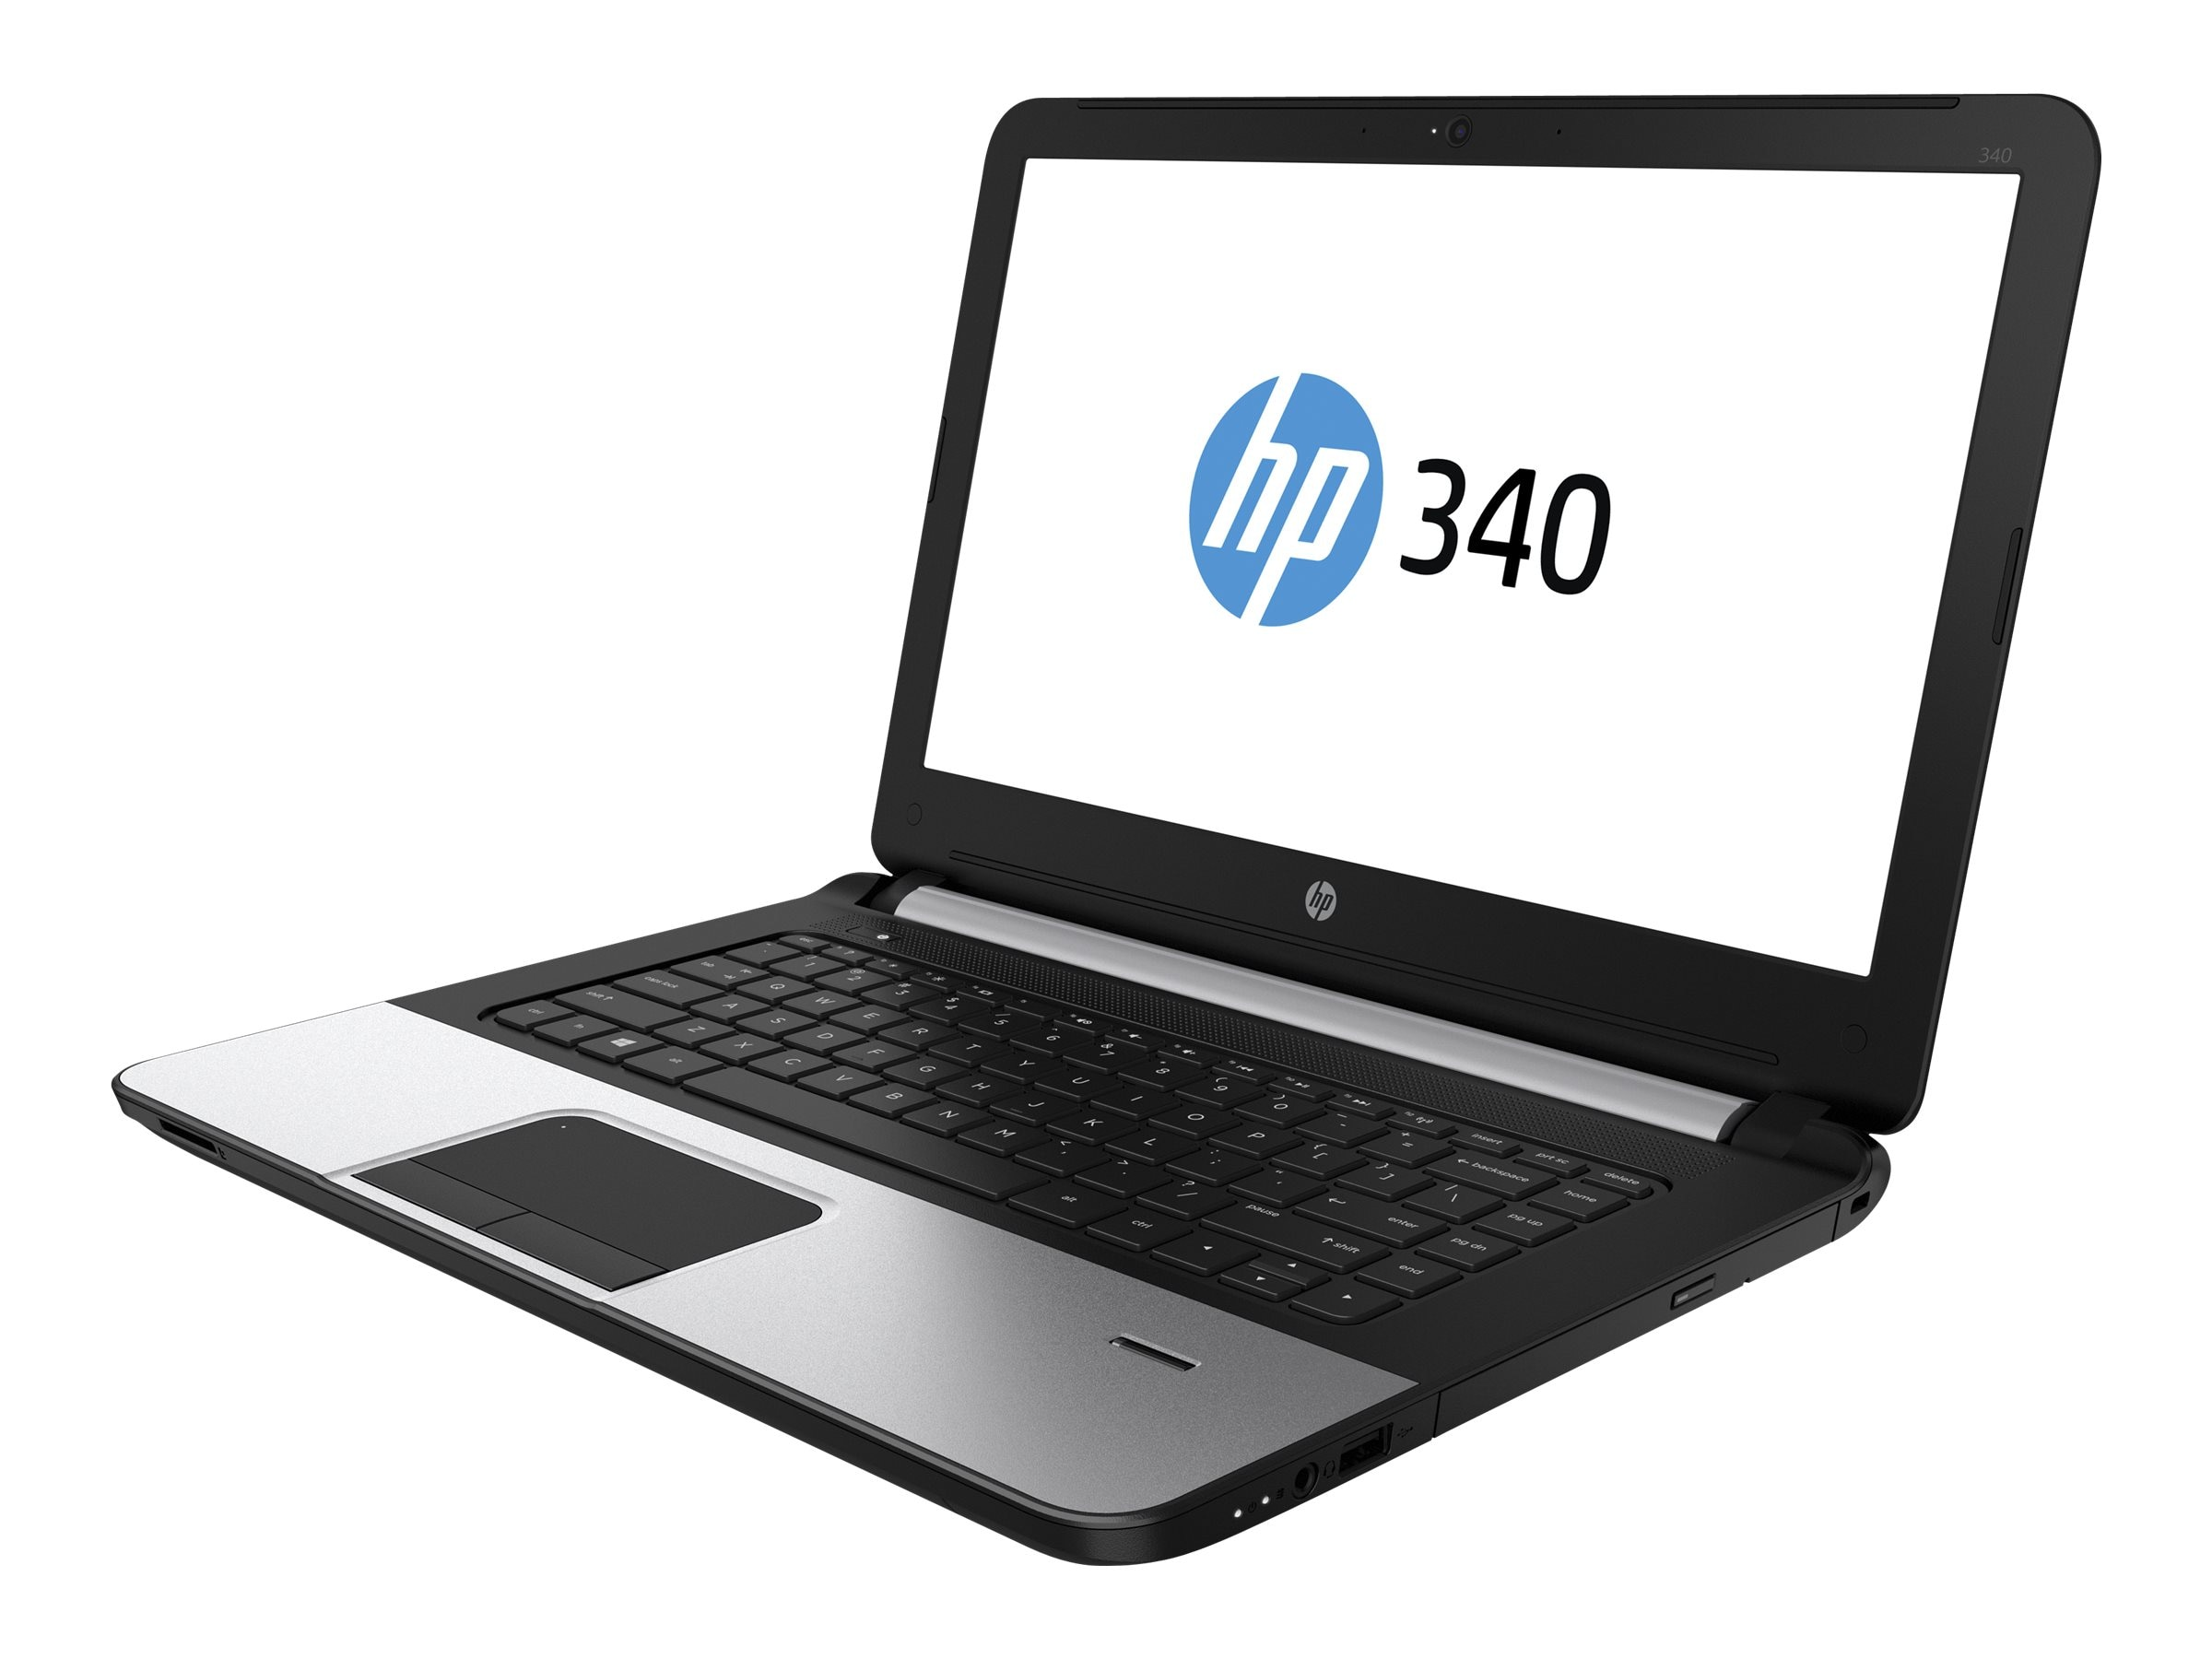 HP 340 G2 1.5GHz Celeron 14in display, L8E40UT#ABA, 18466255, Notebooks